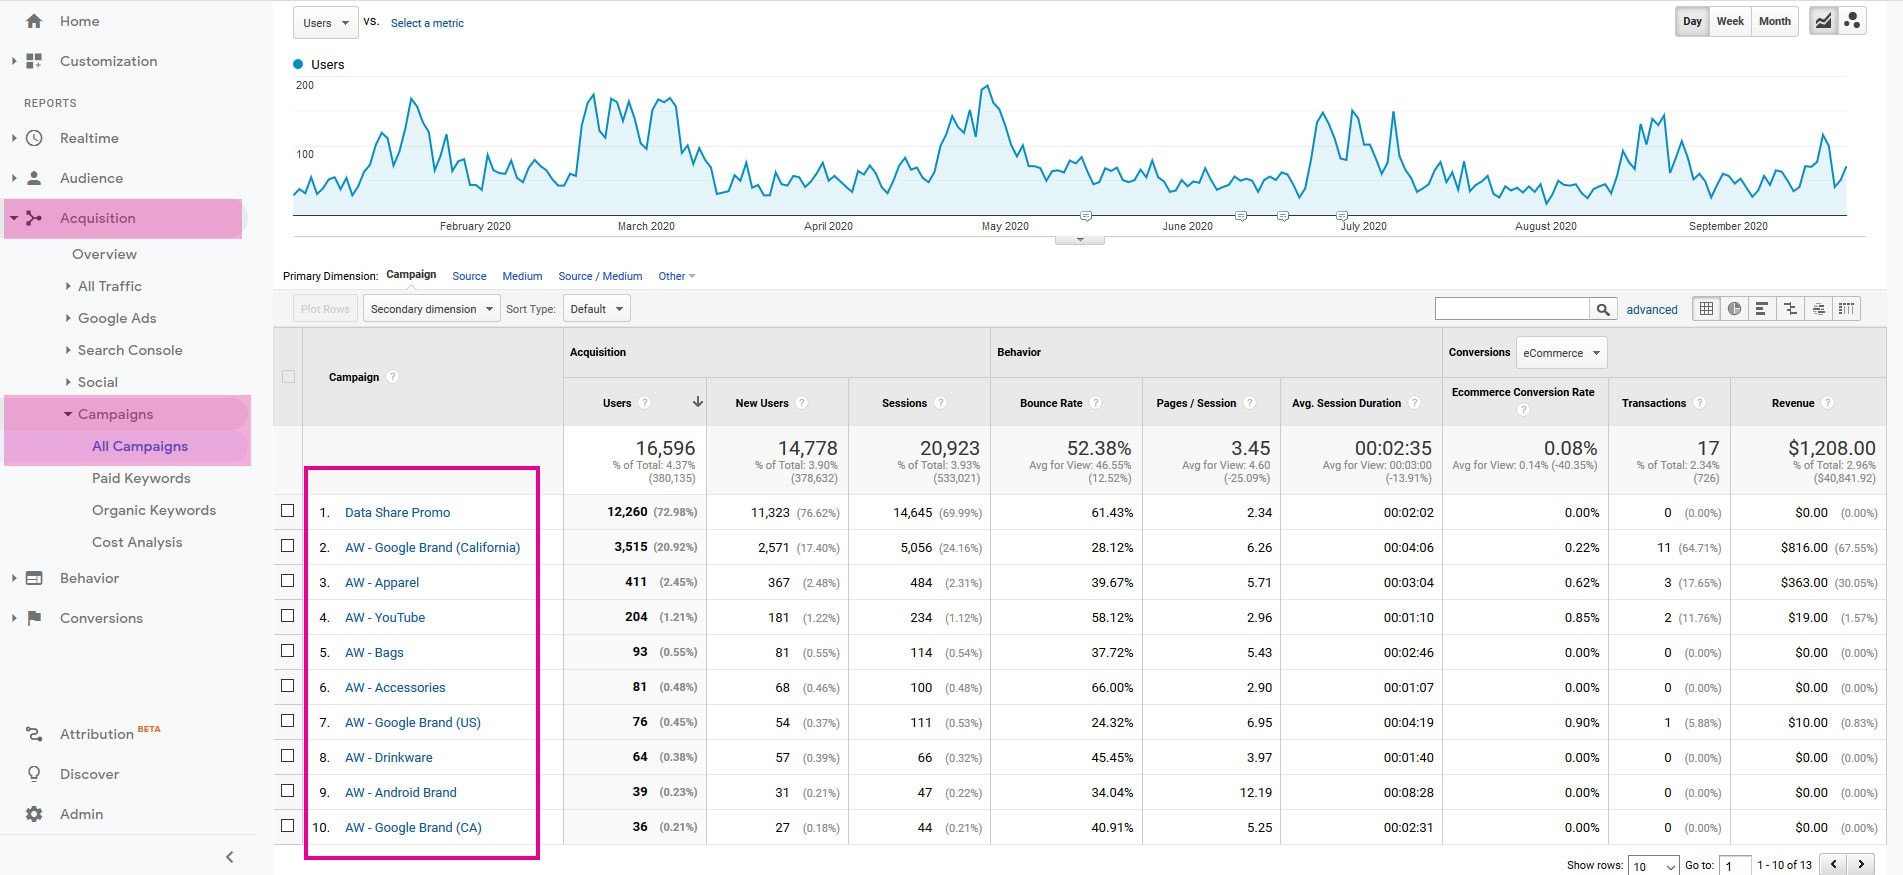 Screenshot from the Google Merchandise store Google Analytics Campaigns report.